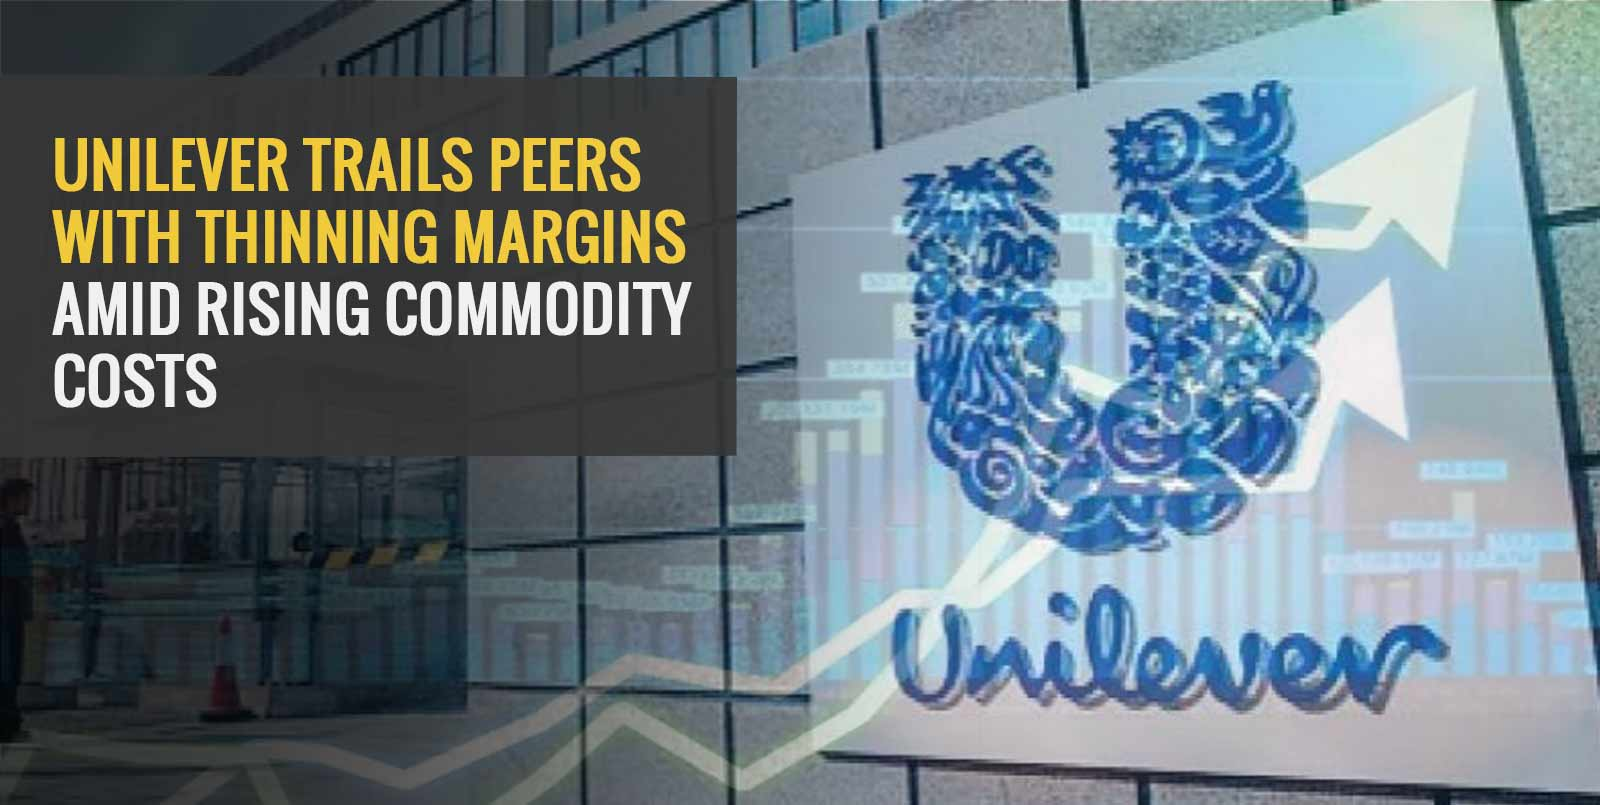 Unilever Trails Peers with Thinning Margins Amid Rising Commodity Costs